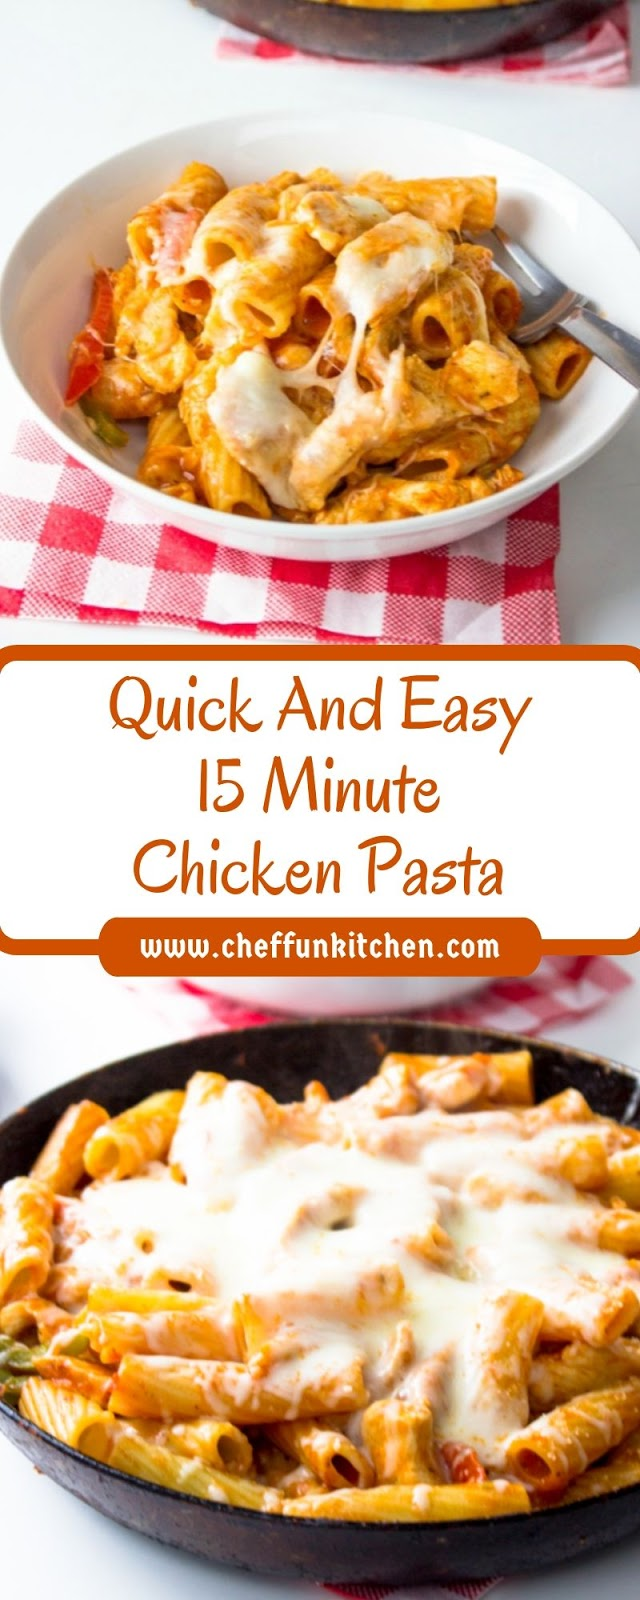 Quick And Easy 15 Minute Chicken Pasta